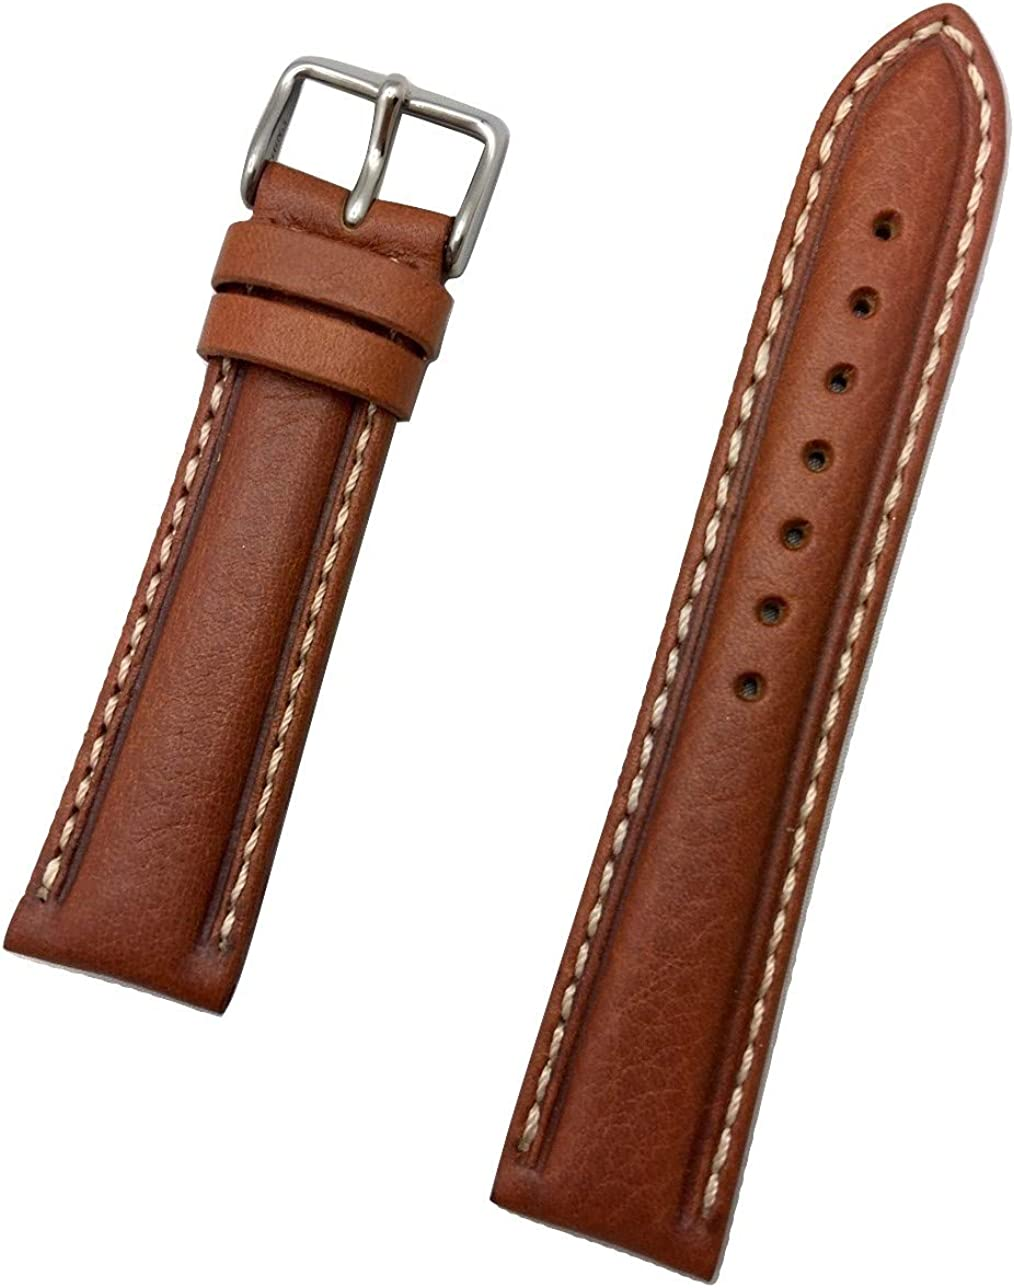 20mm Honey Brown Genuine Leather Watch Band | Center Padded Replacement Wrist Strap with Creamy White Stitching that brings New Life to Any Watch (Mens Standard Length)